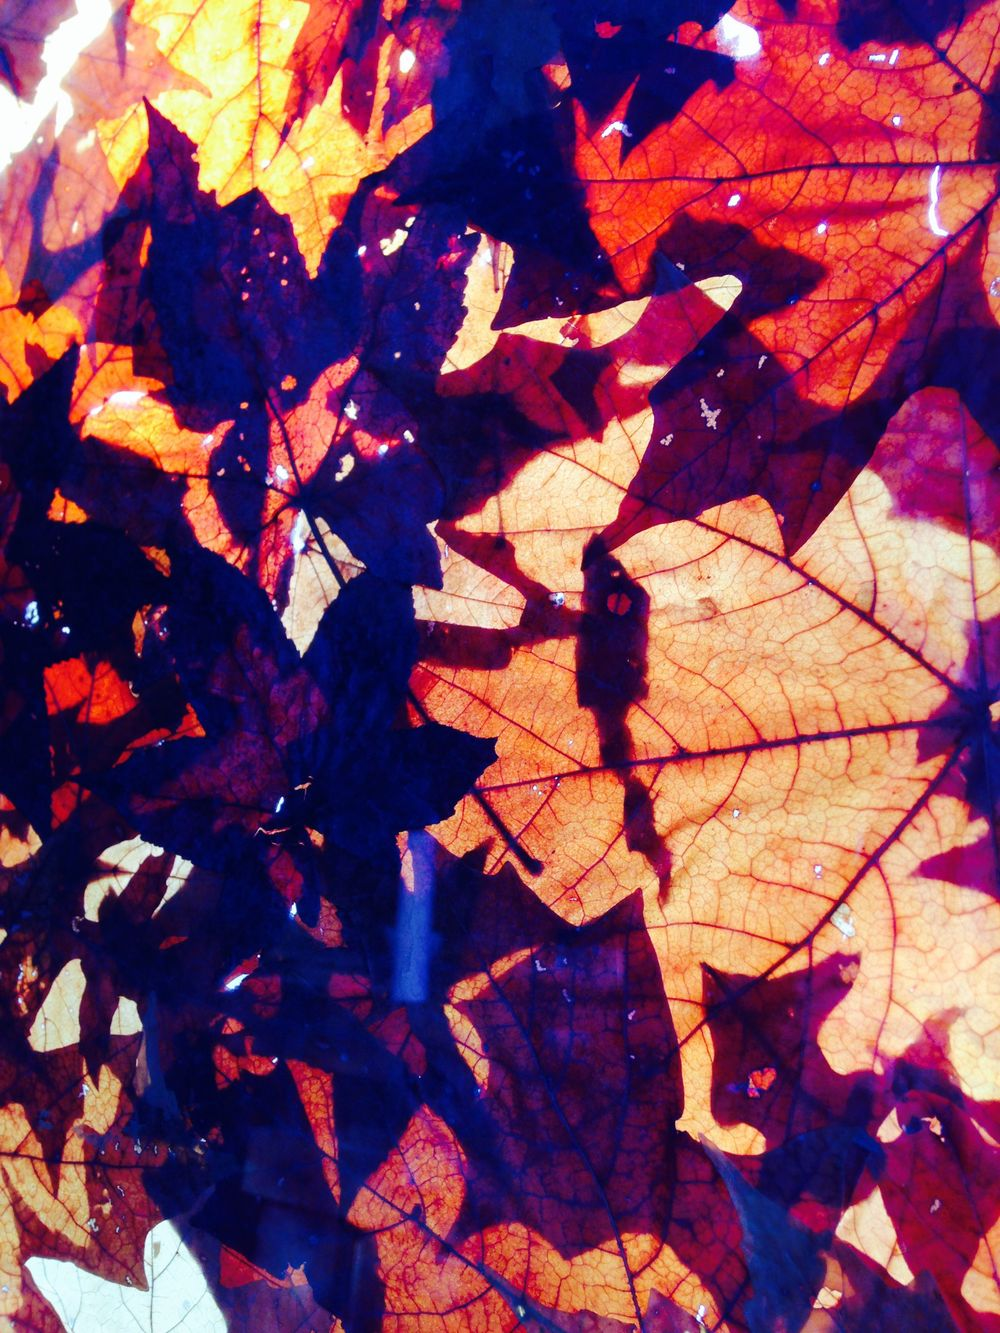 This is actually a glass tray, with fall leaves pressed between two panes of glass, held up to a window.